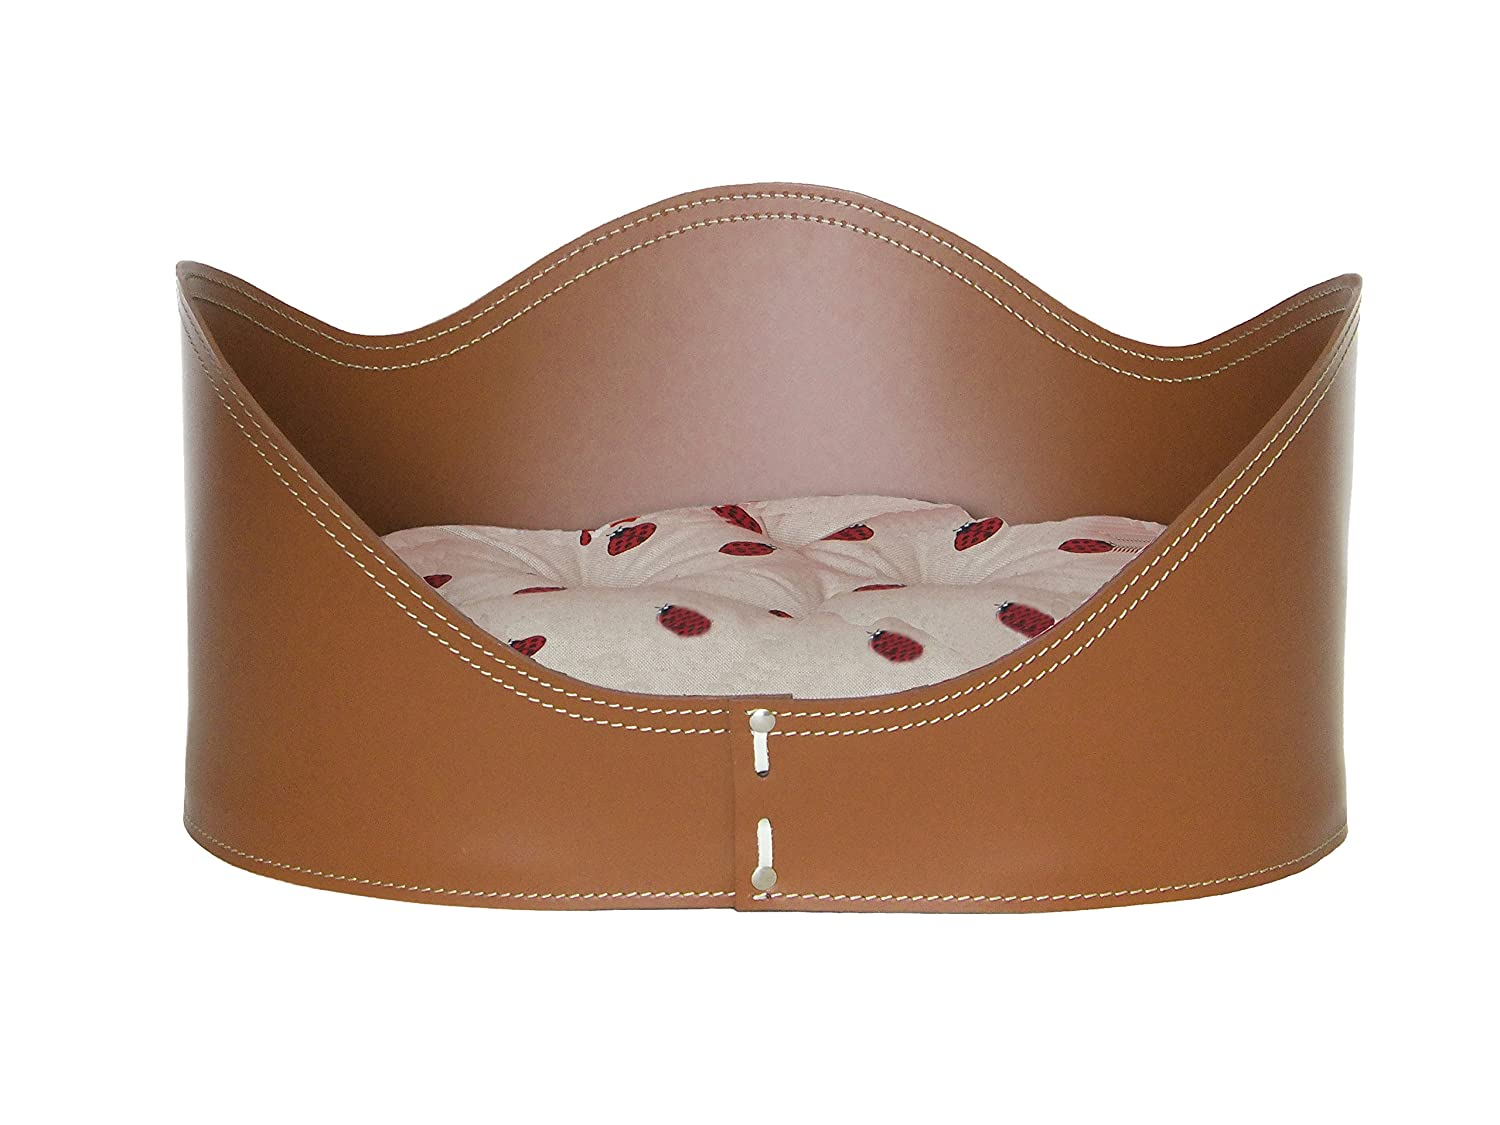 NUVOLA 50  dog bed cat bed basket in leather Brown color with pillow.-Ladybug Fabric